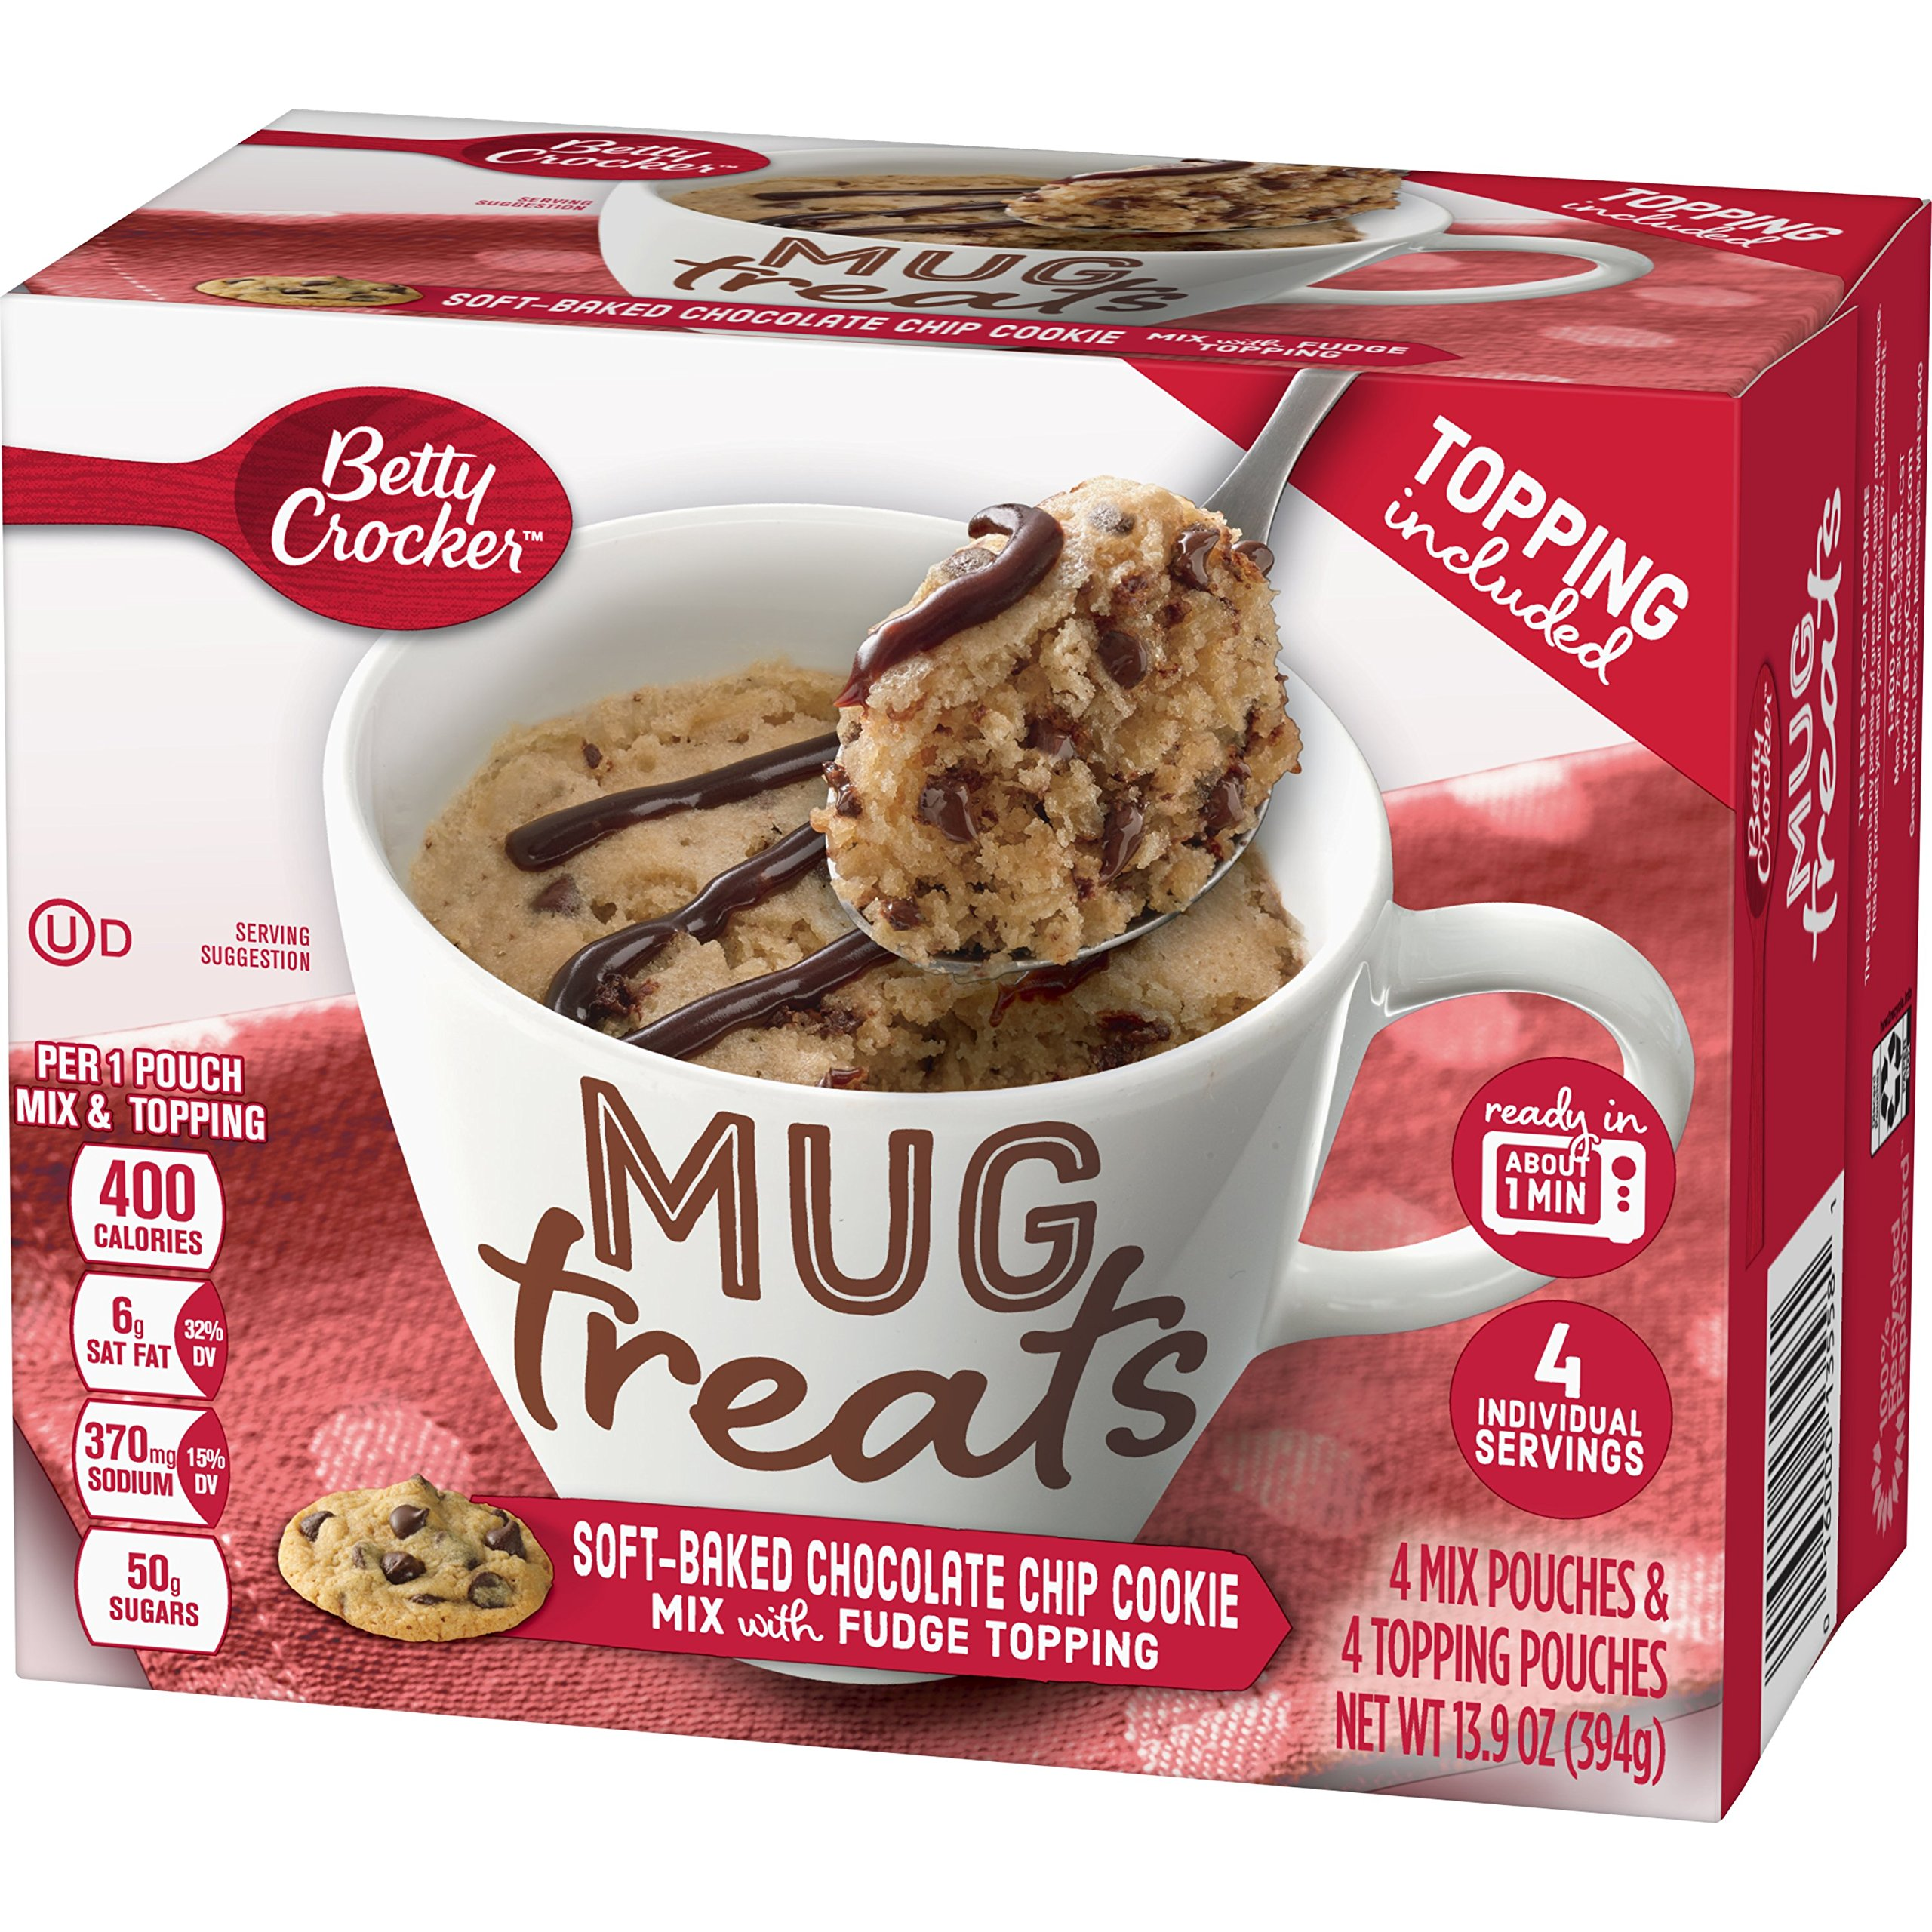 Betty Crocker Baking Mug Treats Soft-Baked Chocolate Chip Cookie Mix with Fudge Topping, 13.9 oz(us)